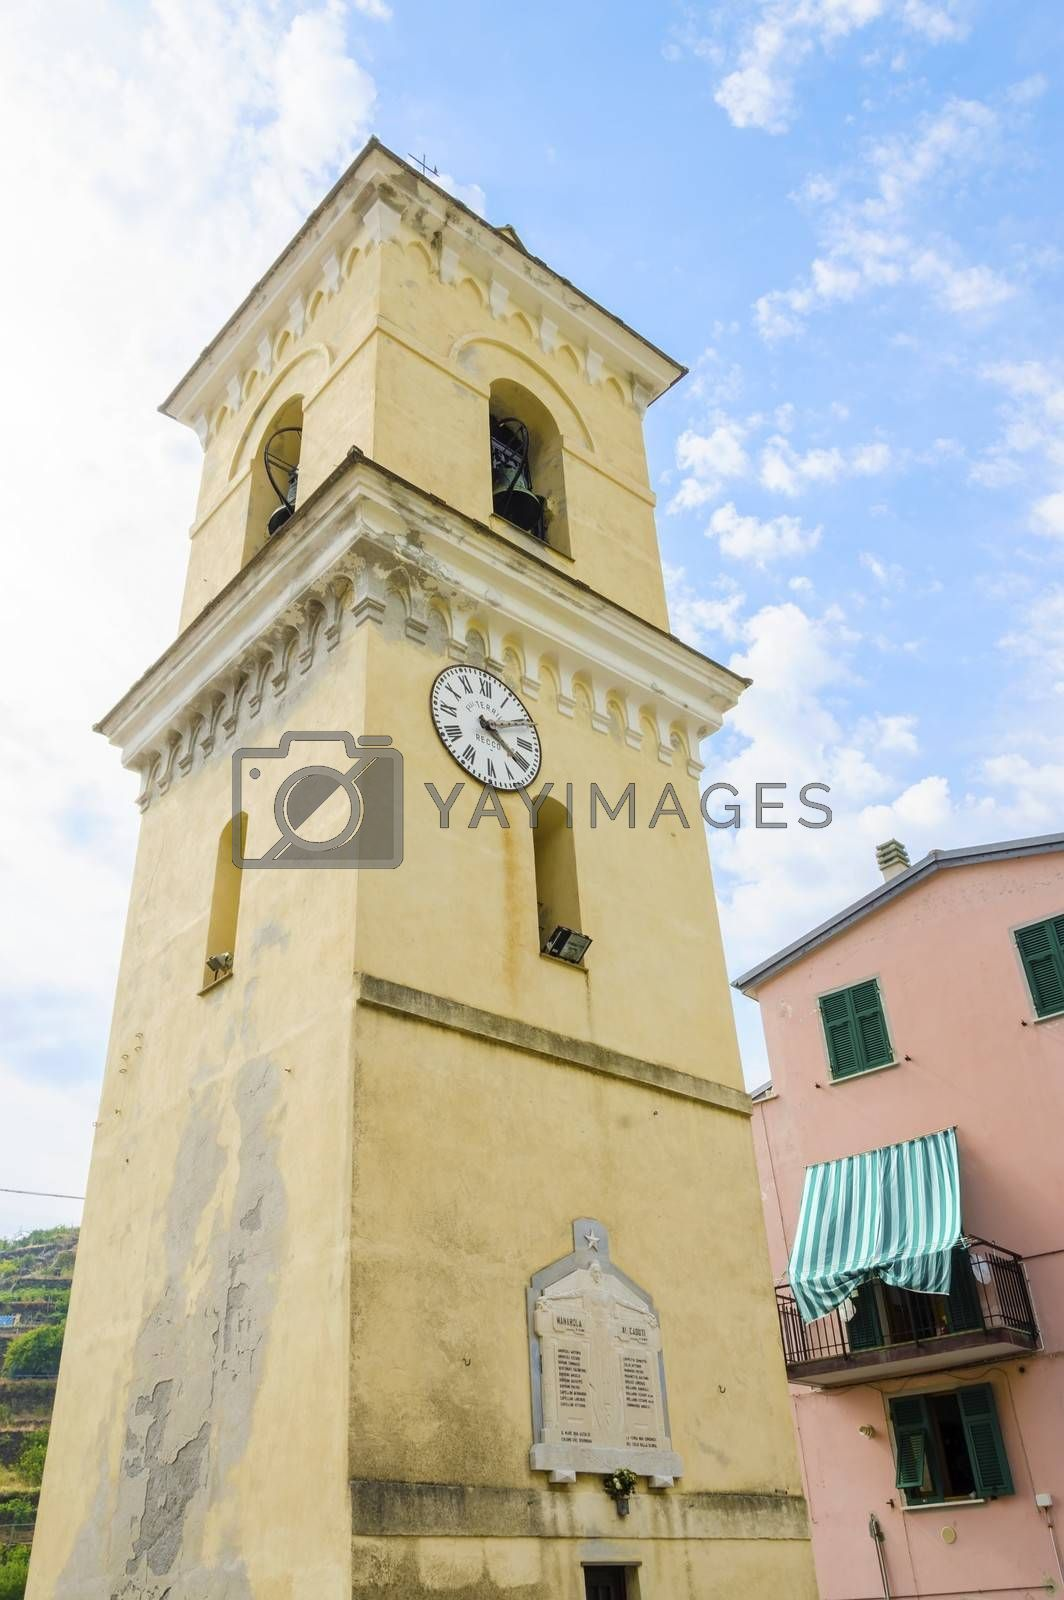 San Lorenzo church bell tower, Manarola, Cinque Terre, Italy by f8grapher